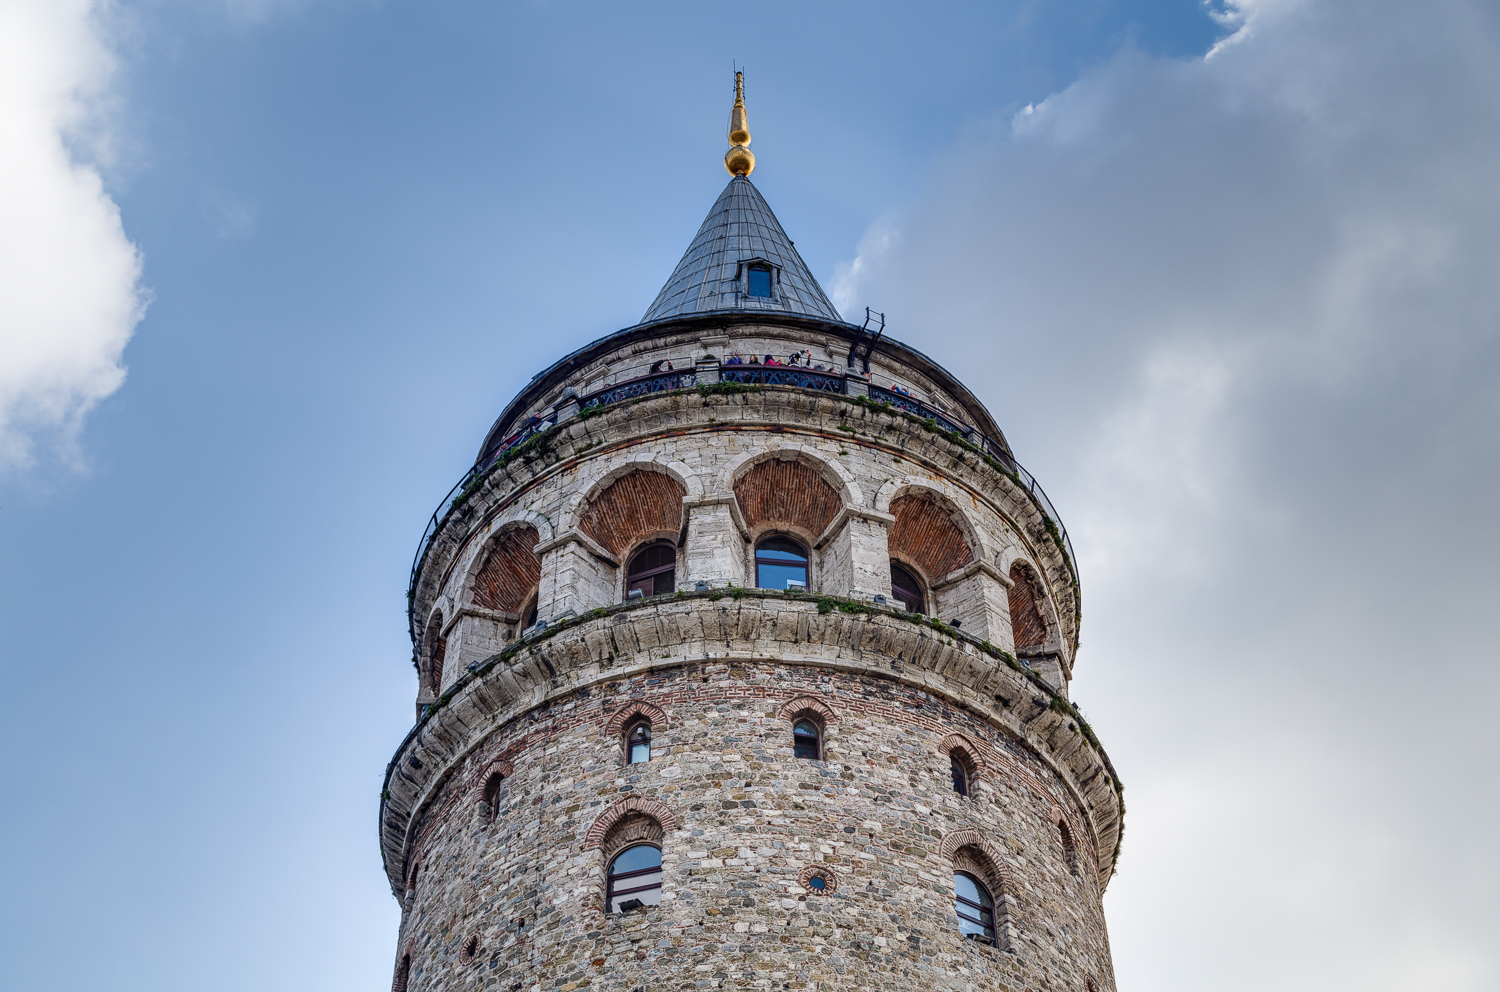 The Galata Tower (Galata Kulesi in Turkish) — called Christea Turris (the Tower of Christ) by the Genoese — is a medieval stone tower in the Galata/Karaköy quarter. It's one of the city's most striking landmarks, dominates the skyline and offers a panoramic vista of the city.